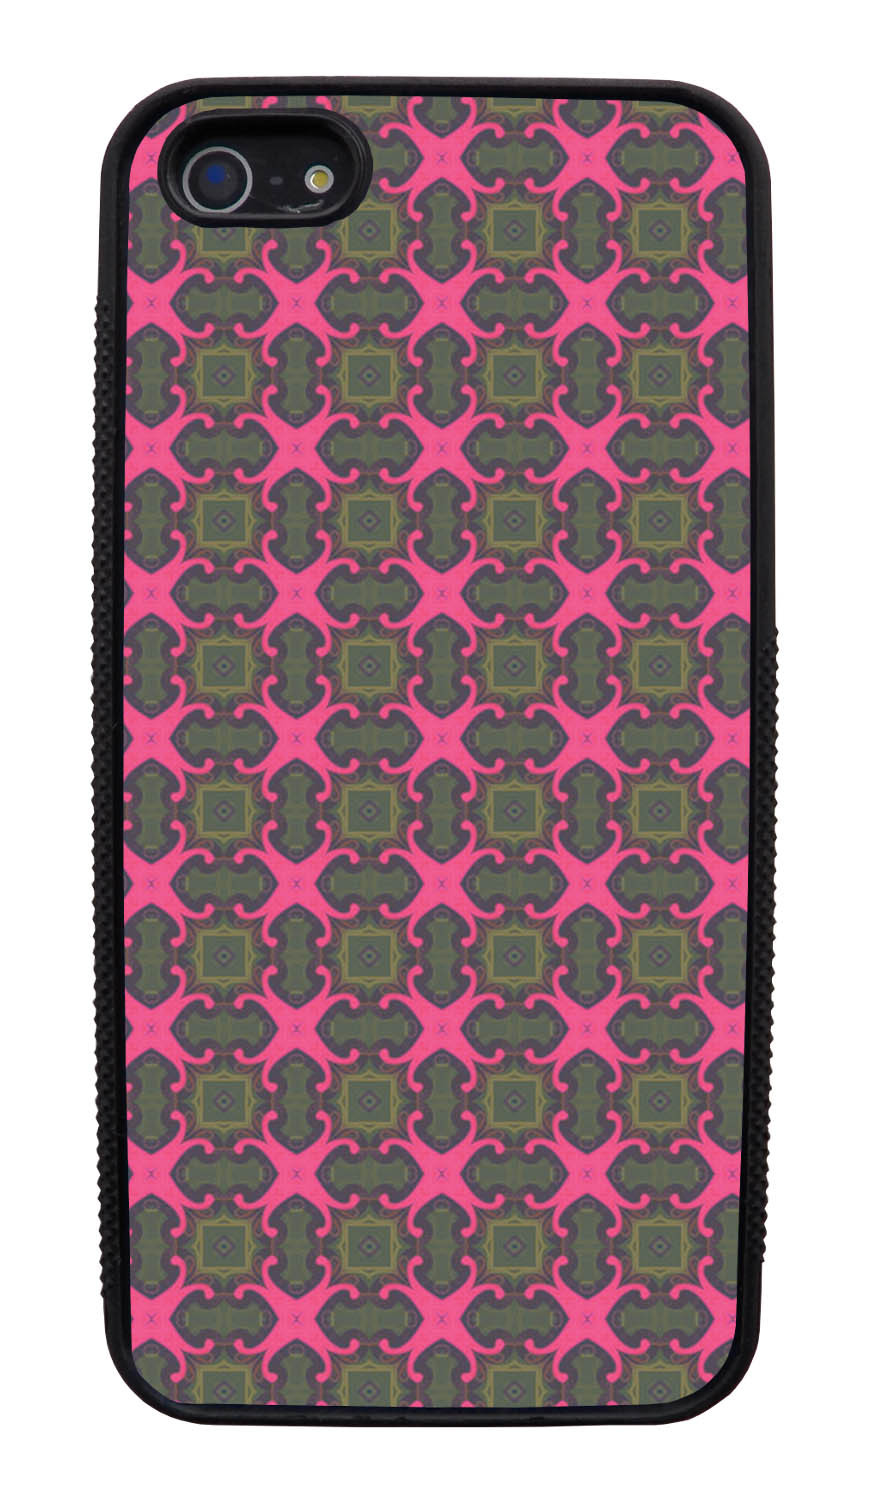 Apple iPhone 5 / 5S Abstract Case - Olive Green and Pink - Flower Petal Like - Black Slim Rubber Case